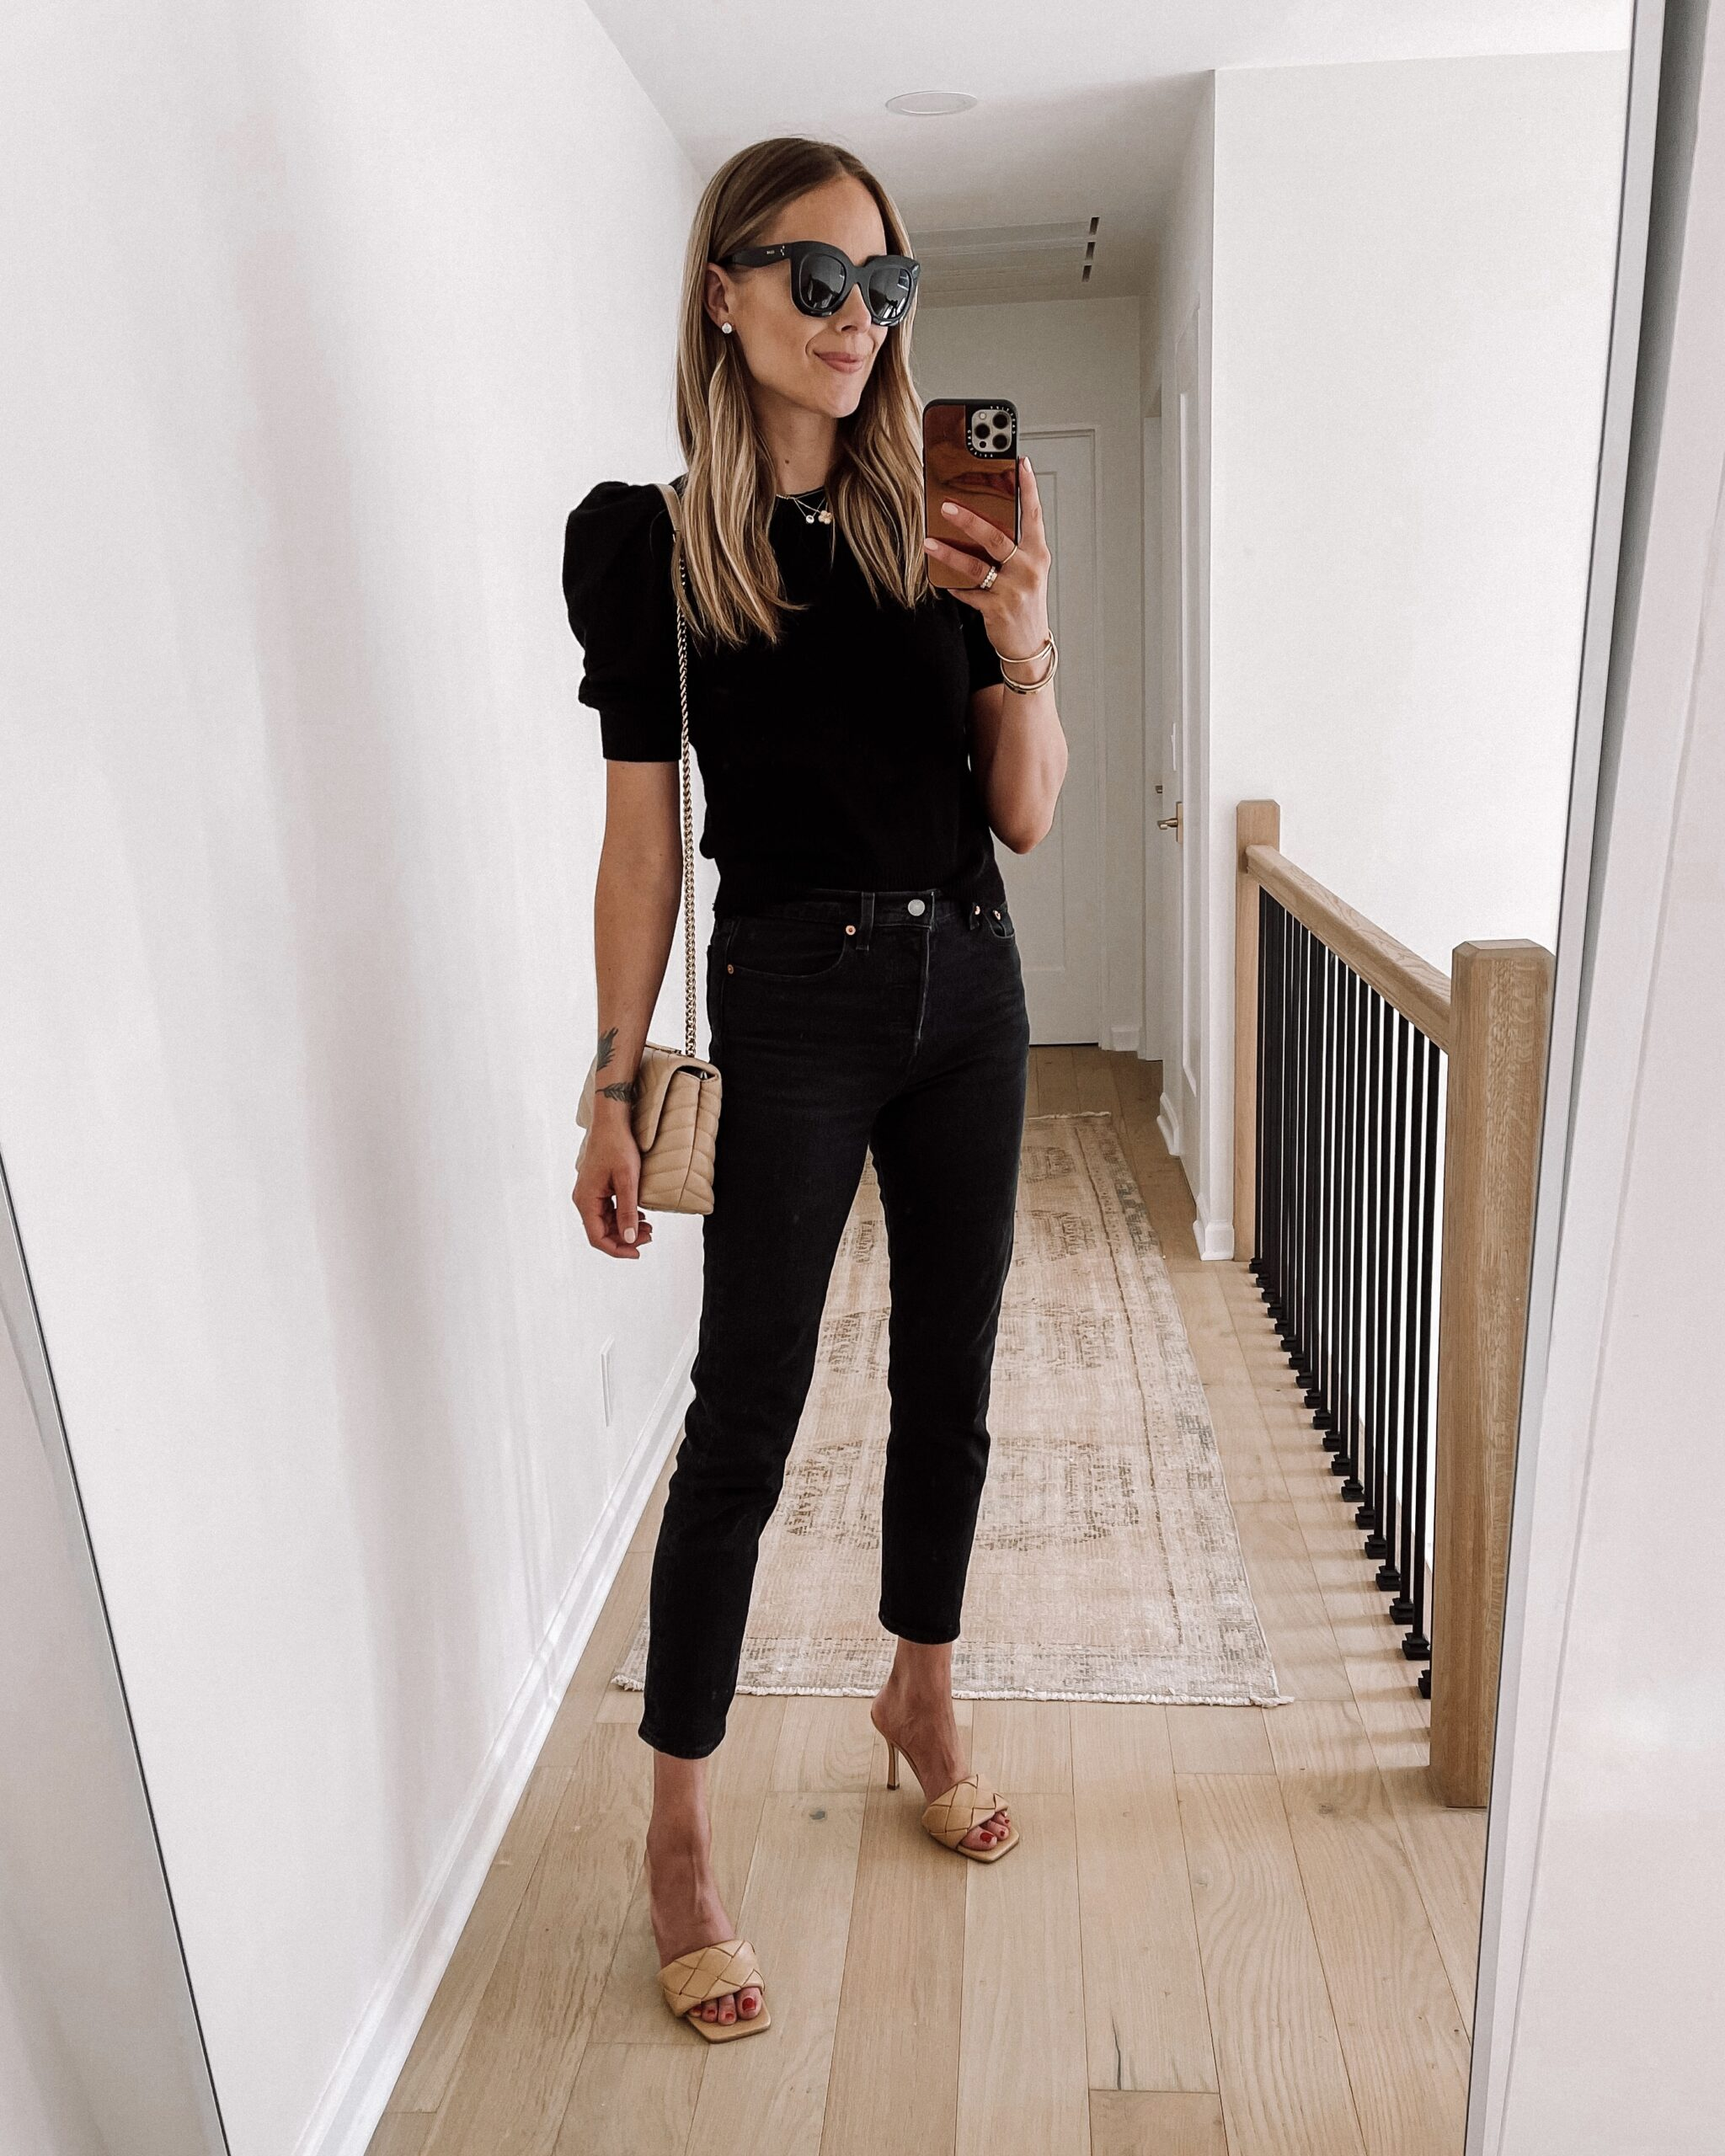 Fashion Jackson Black Puff Sleeve Sweater Black Levis Jeans Tan Woven Heeled Sandals Womens Fall Shoe Trends